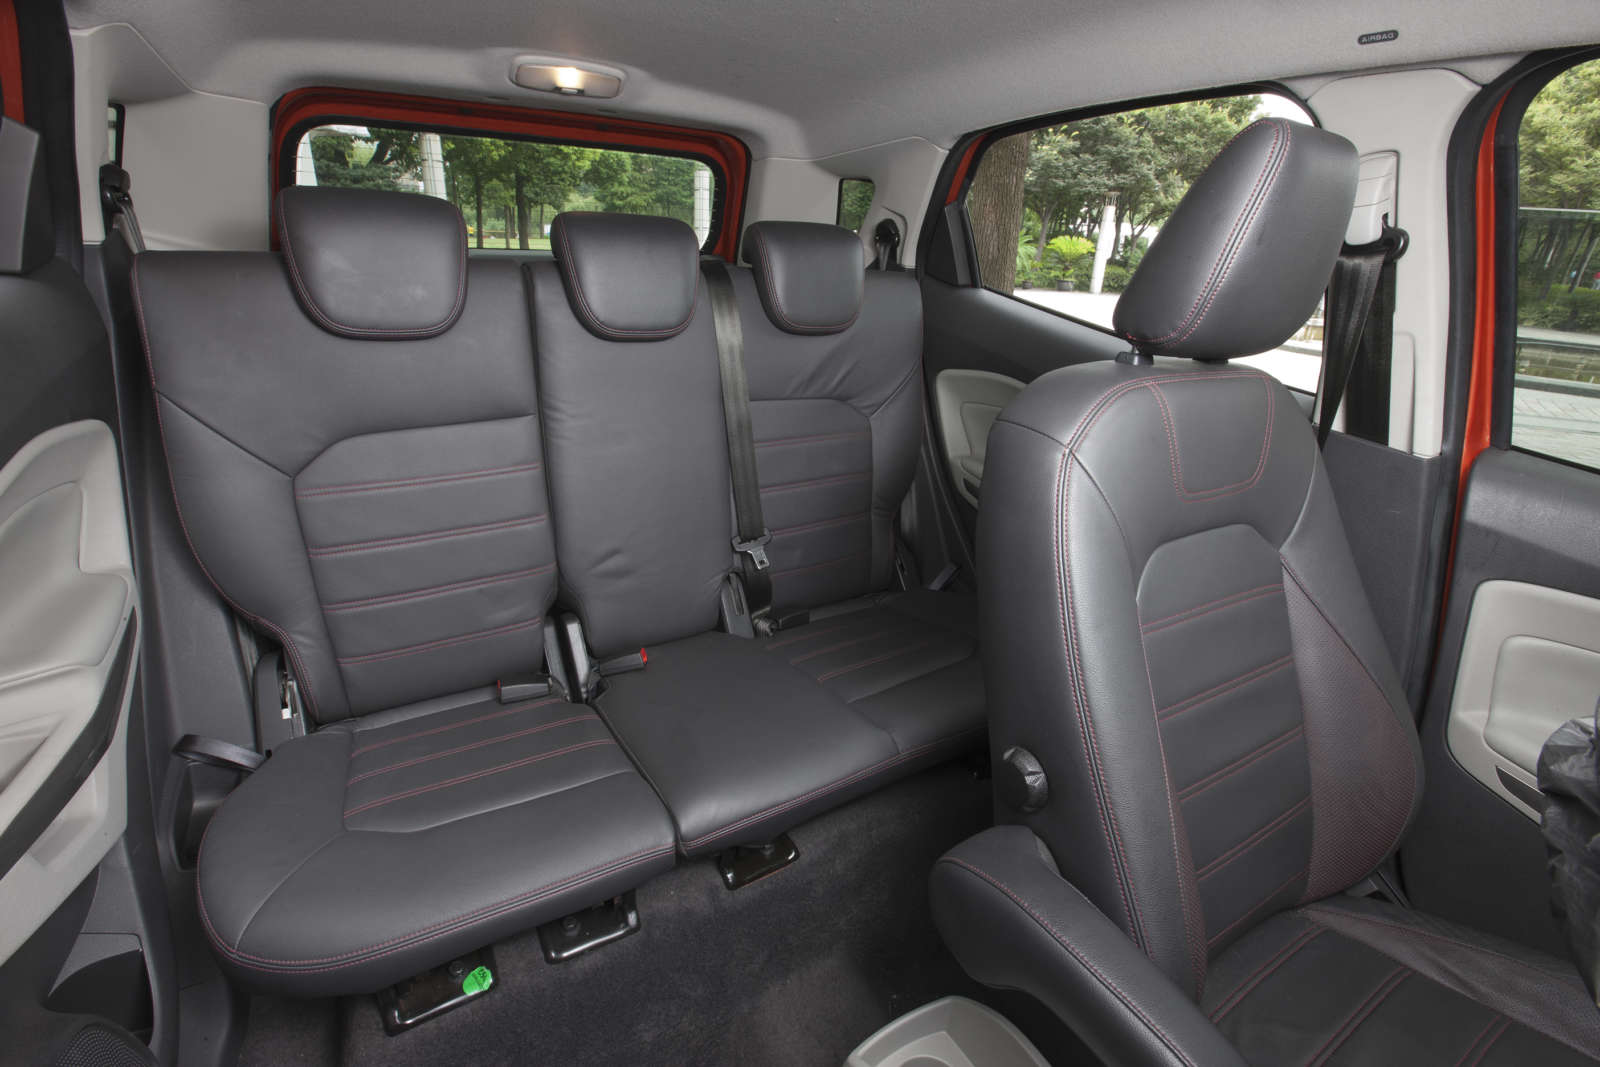 Ford_EcoSport_Seating_Rear_Space